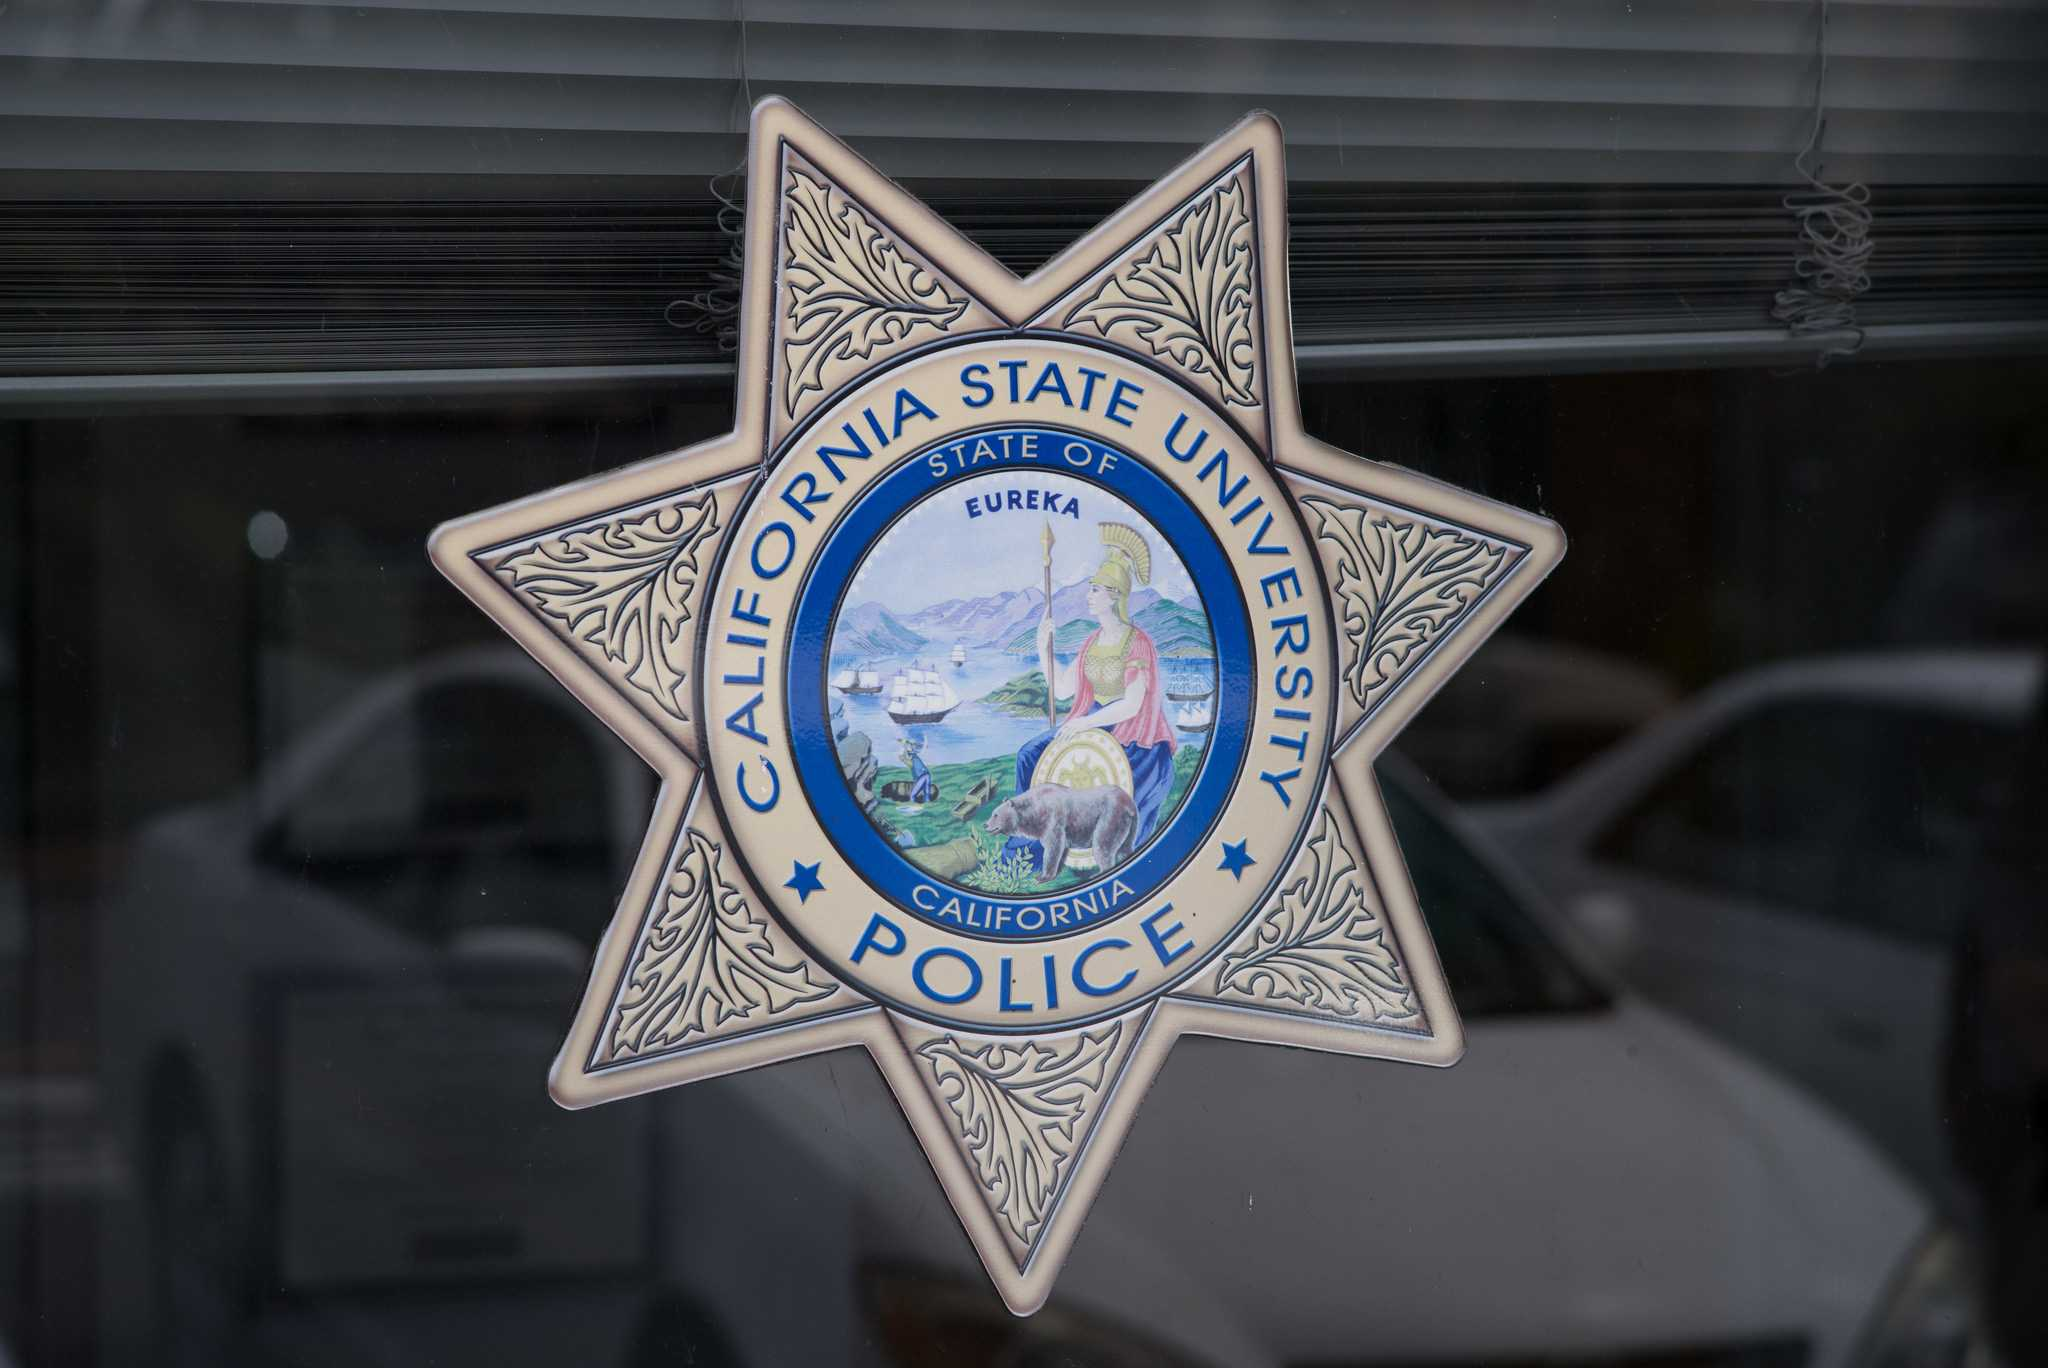 CSU Police logo at the SF State University Police, September 2, 2015. (Brian Churchwell / Xpress)